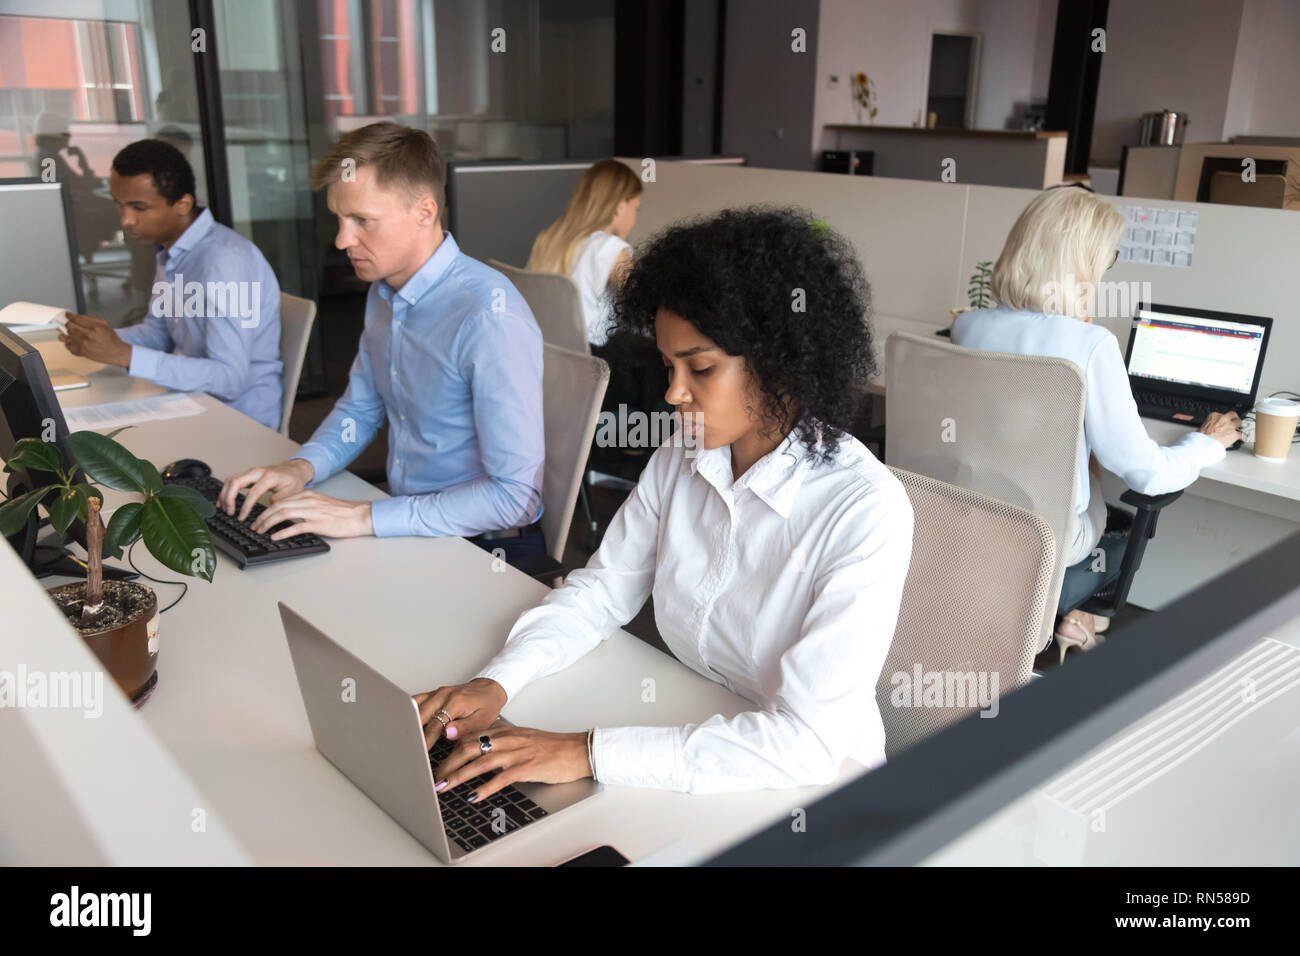 Diverse millennial employees sitting at desk working in coworking space - Stock Image